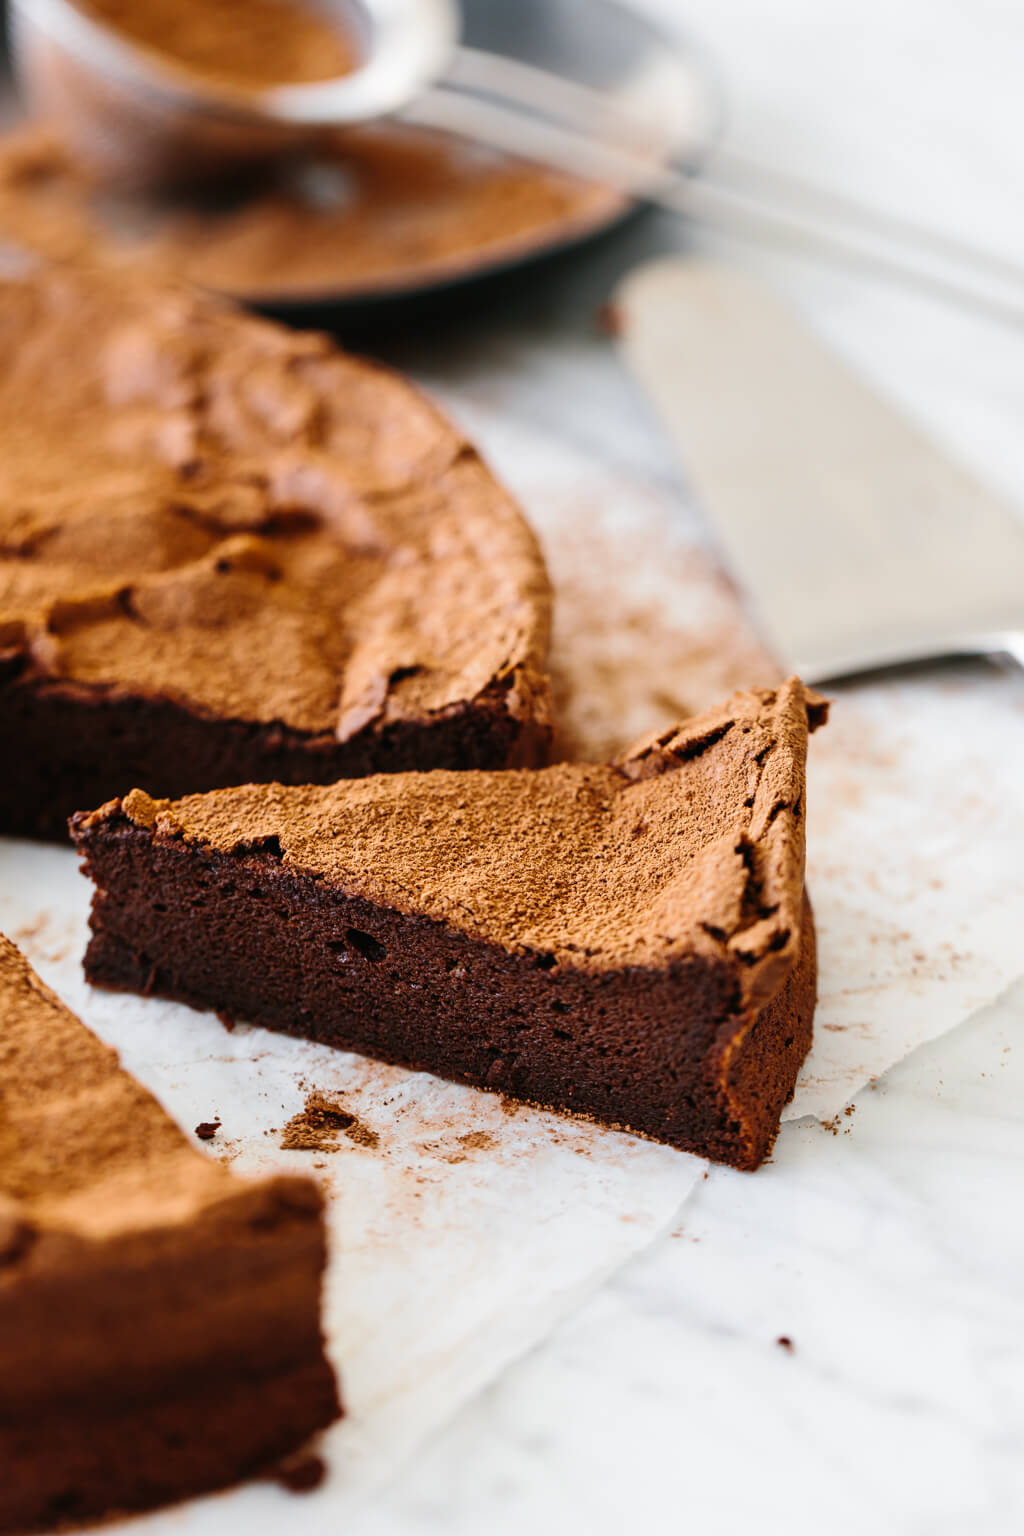 Flourless chocolate cake that's gluten-free, paleo and easy! It's the best flourless chocolate cake recipe and only has 5 ingredients!